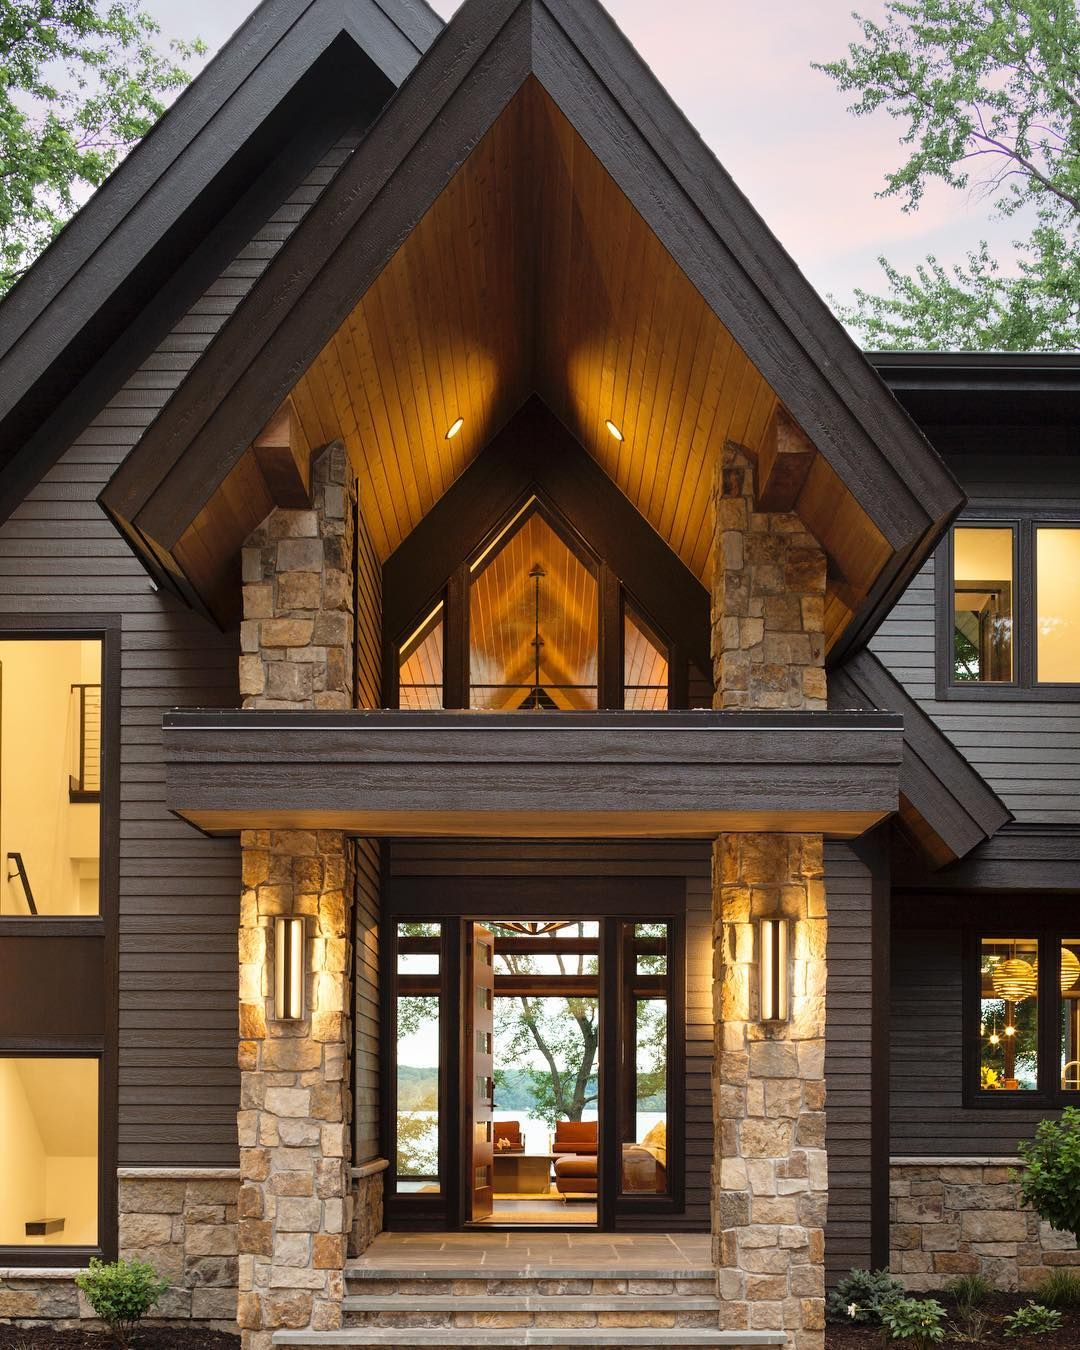 Unique Home Exterior Design: This Modern Masterpiece From Denali Custom Homes Has